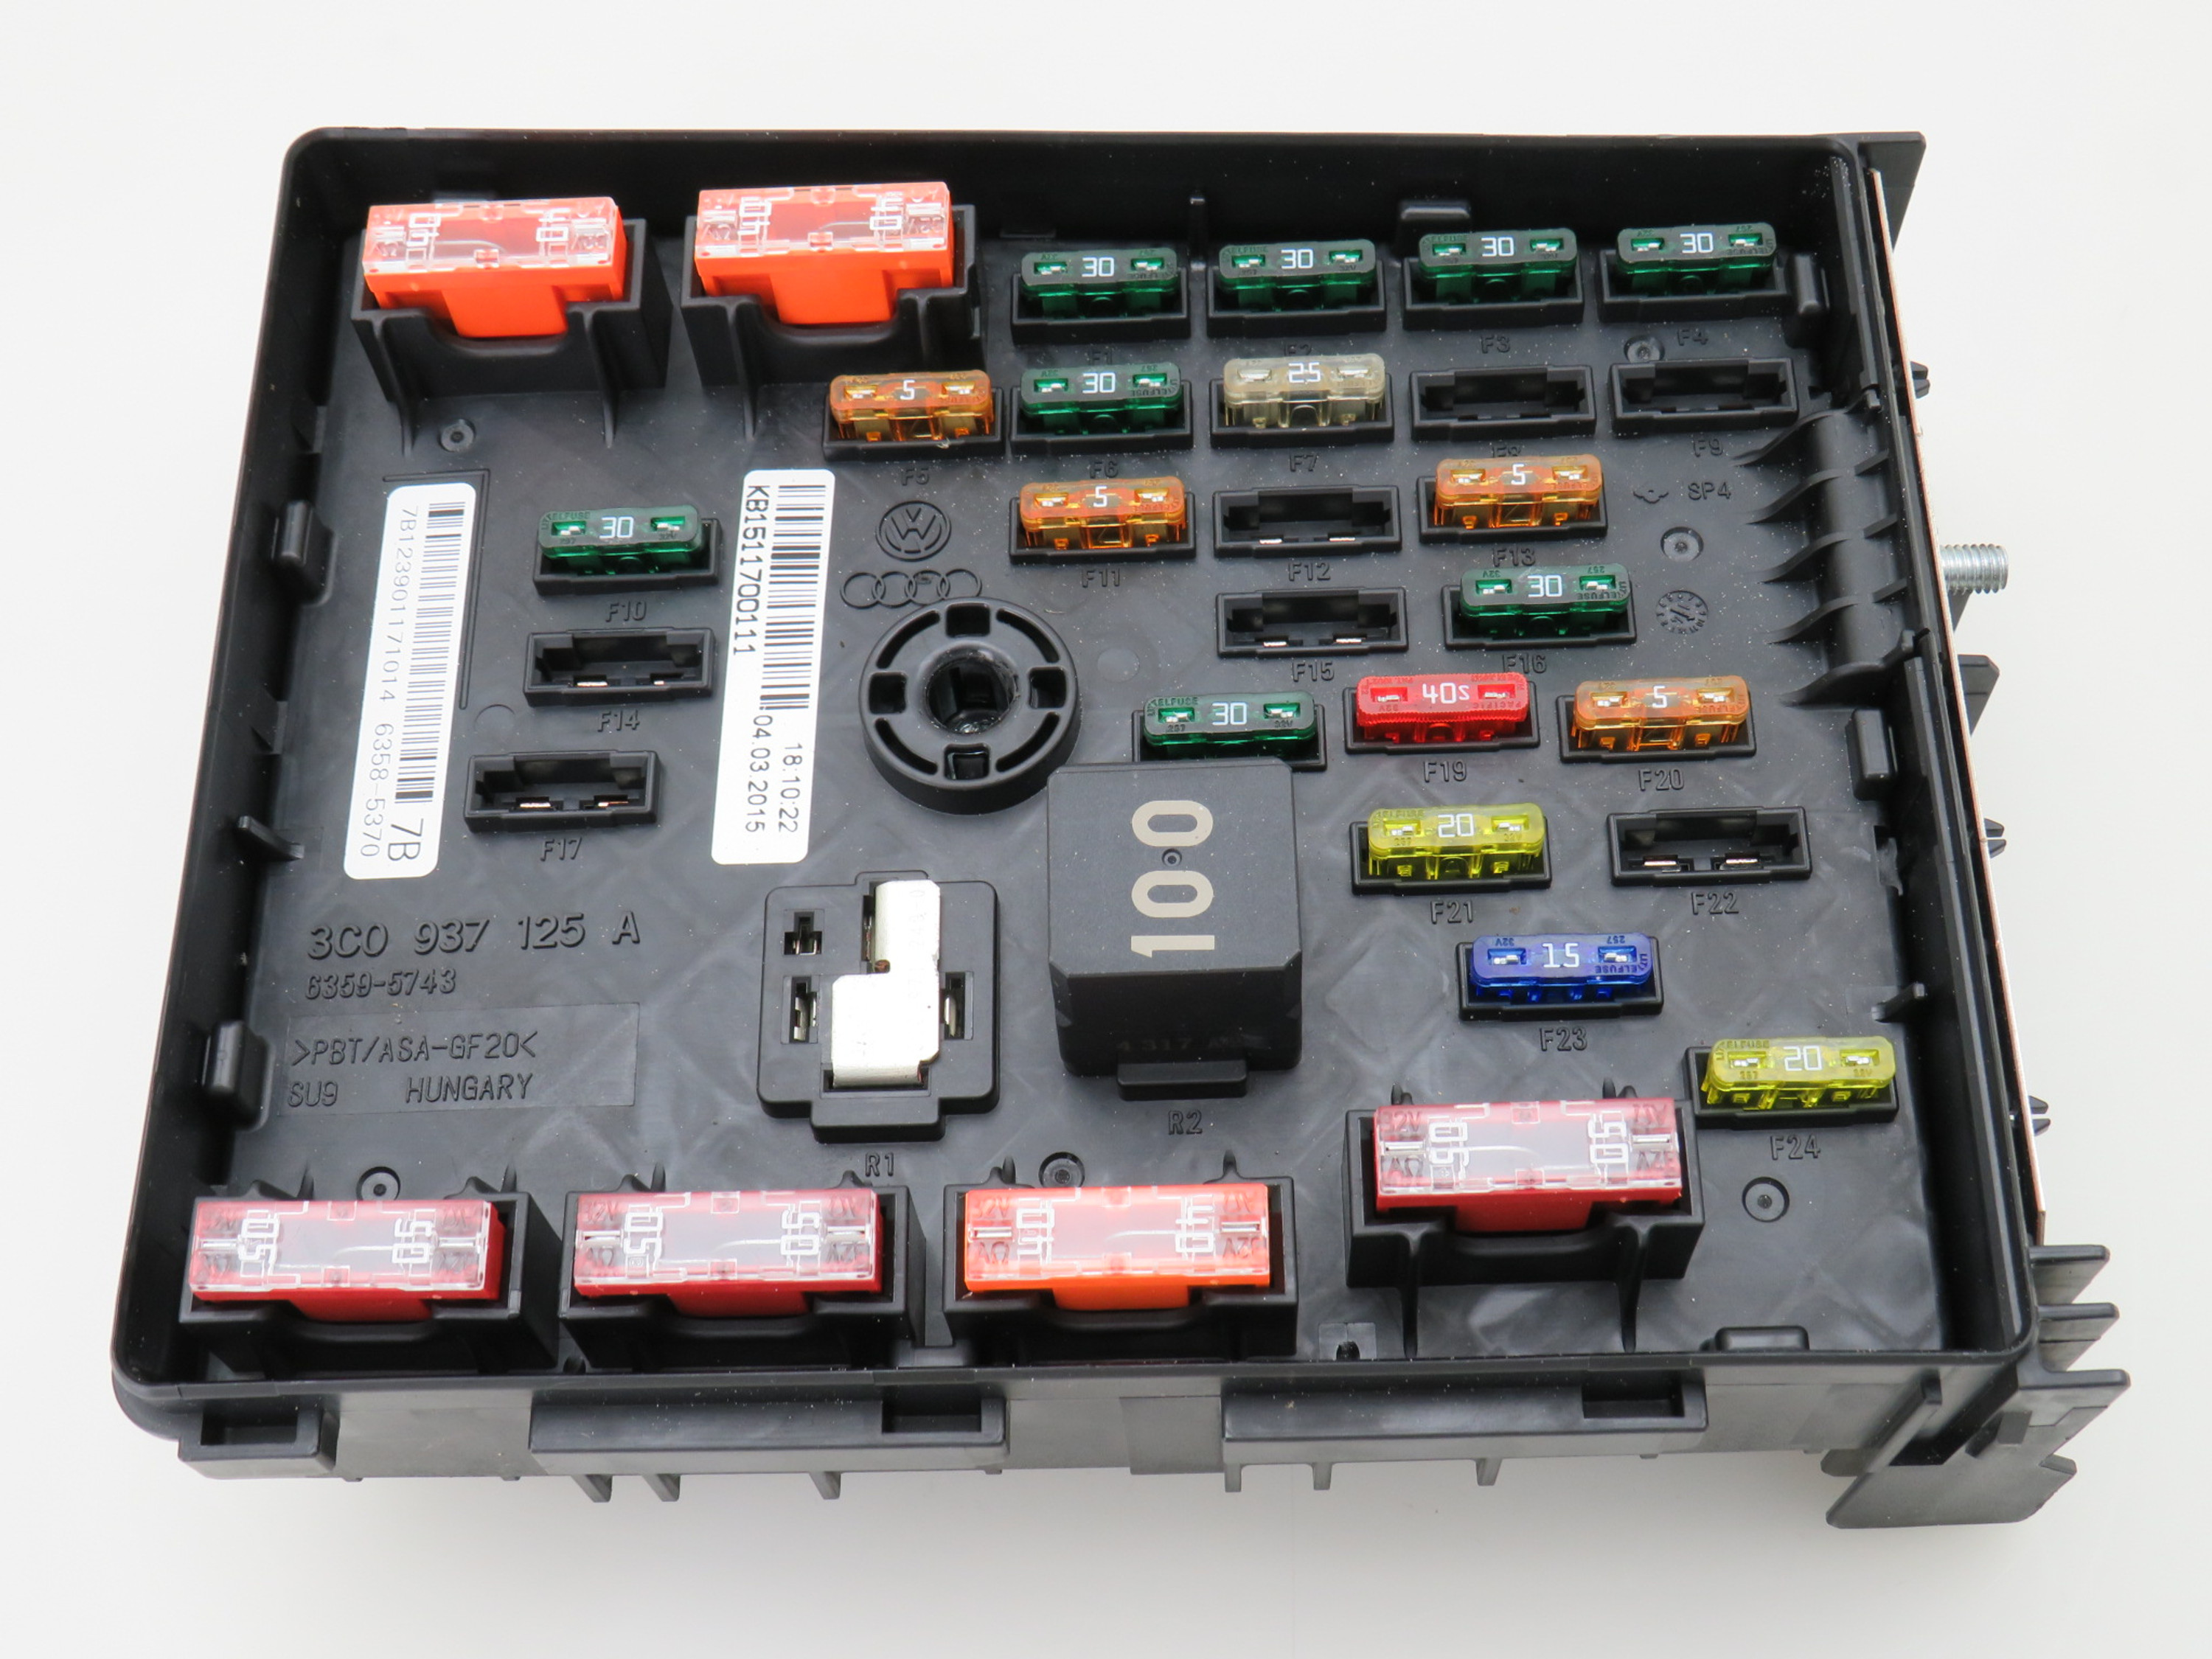 Details about Fuse Box Engine Compartment 3C0937125A VW Sharan 7n Pat on fuse box diagram, fuse switch box, under the hood fuse box, fuse fuse box, 1988 honda prelude under hood fuse box,